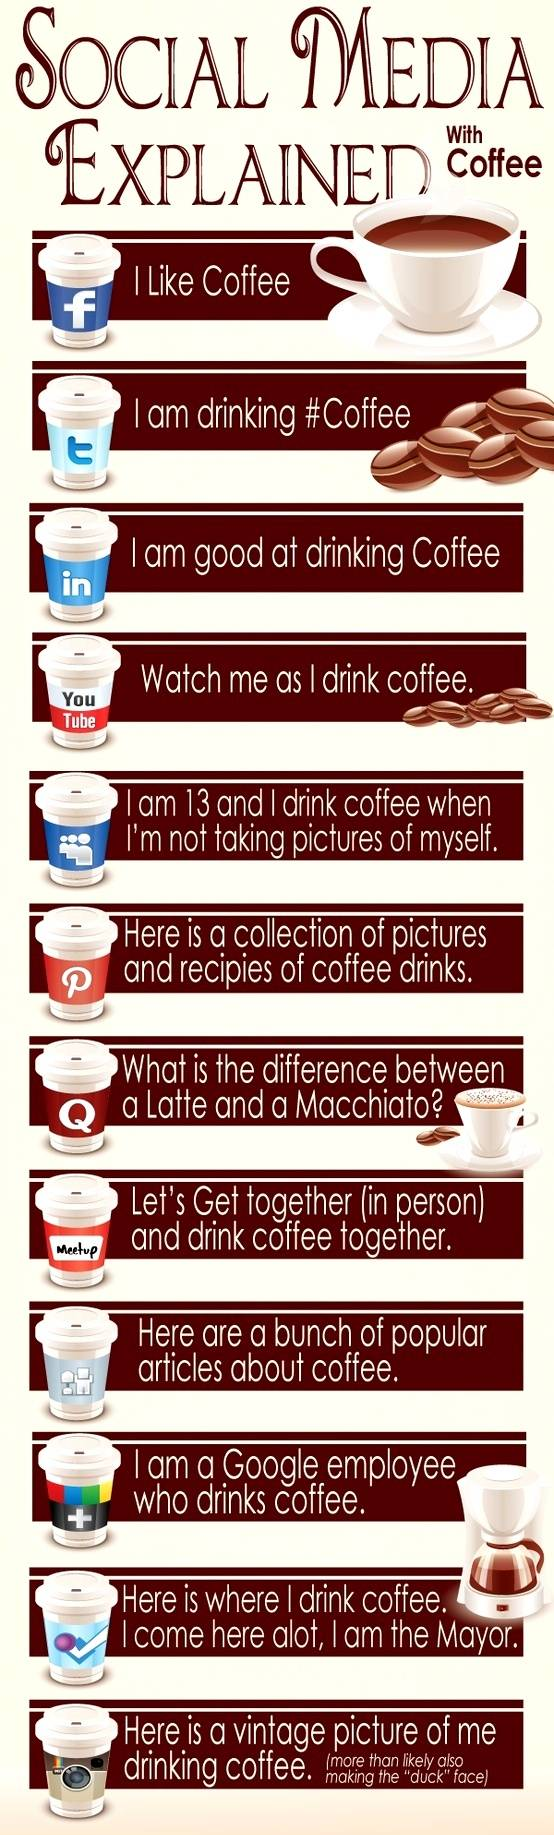 Social Media Explained With Coffee. Bener Banget!